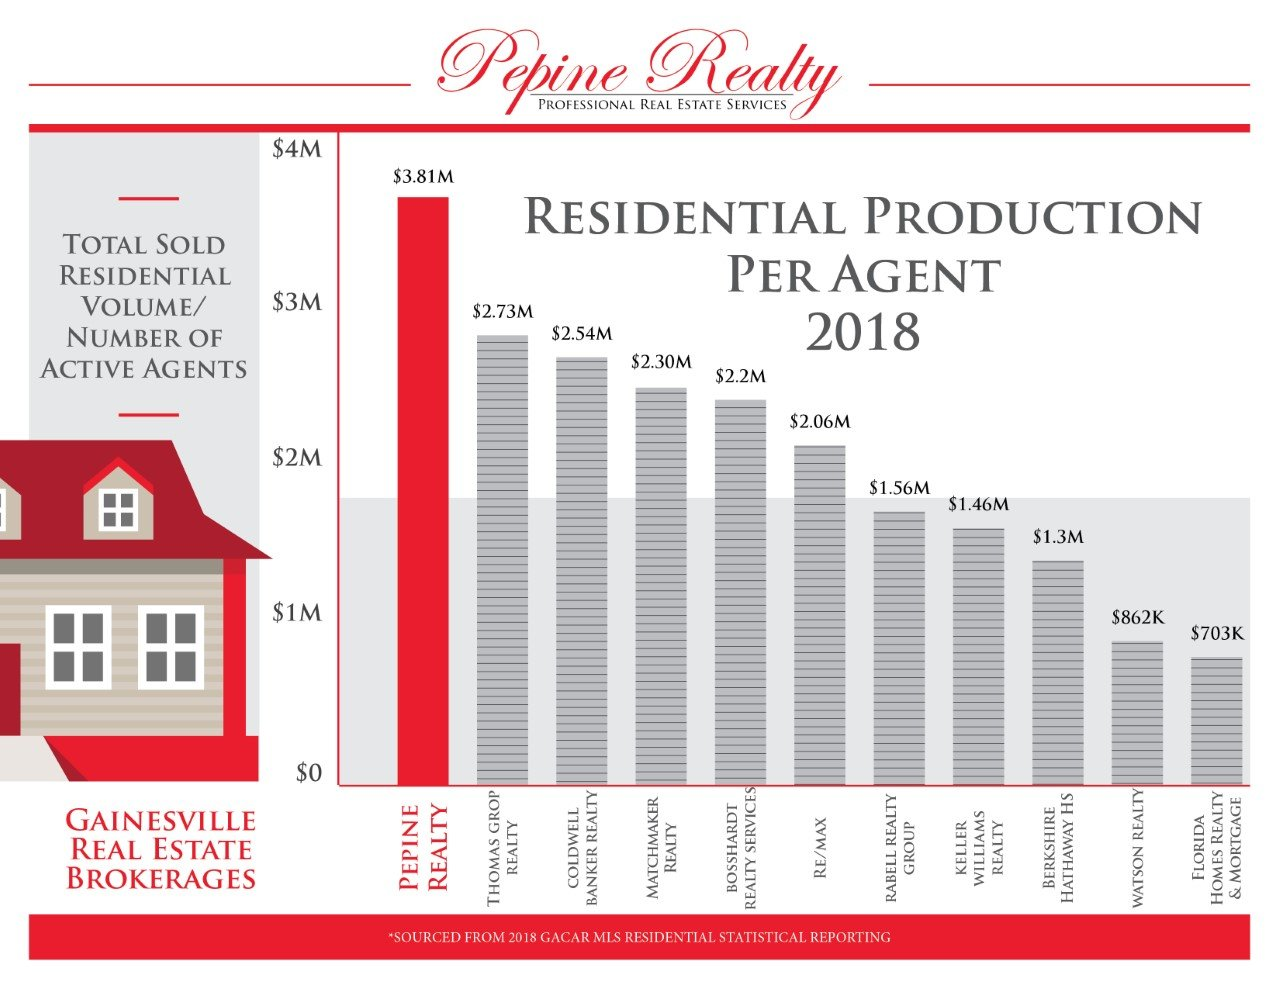 #1 Residential Producing Agents in Alachua County